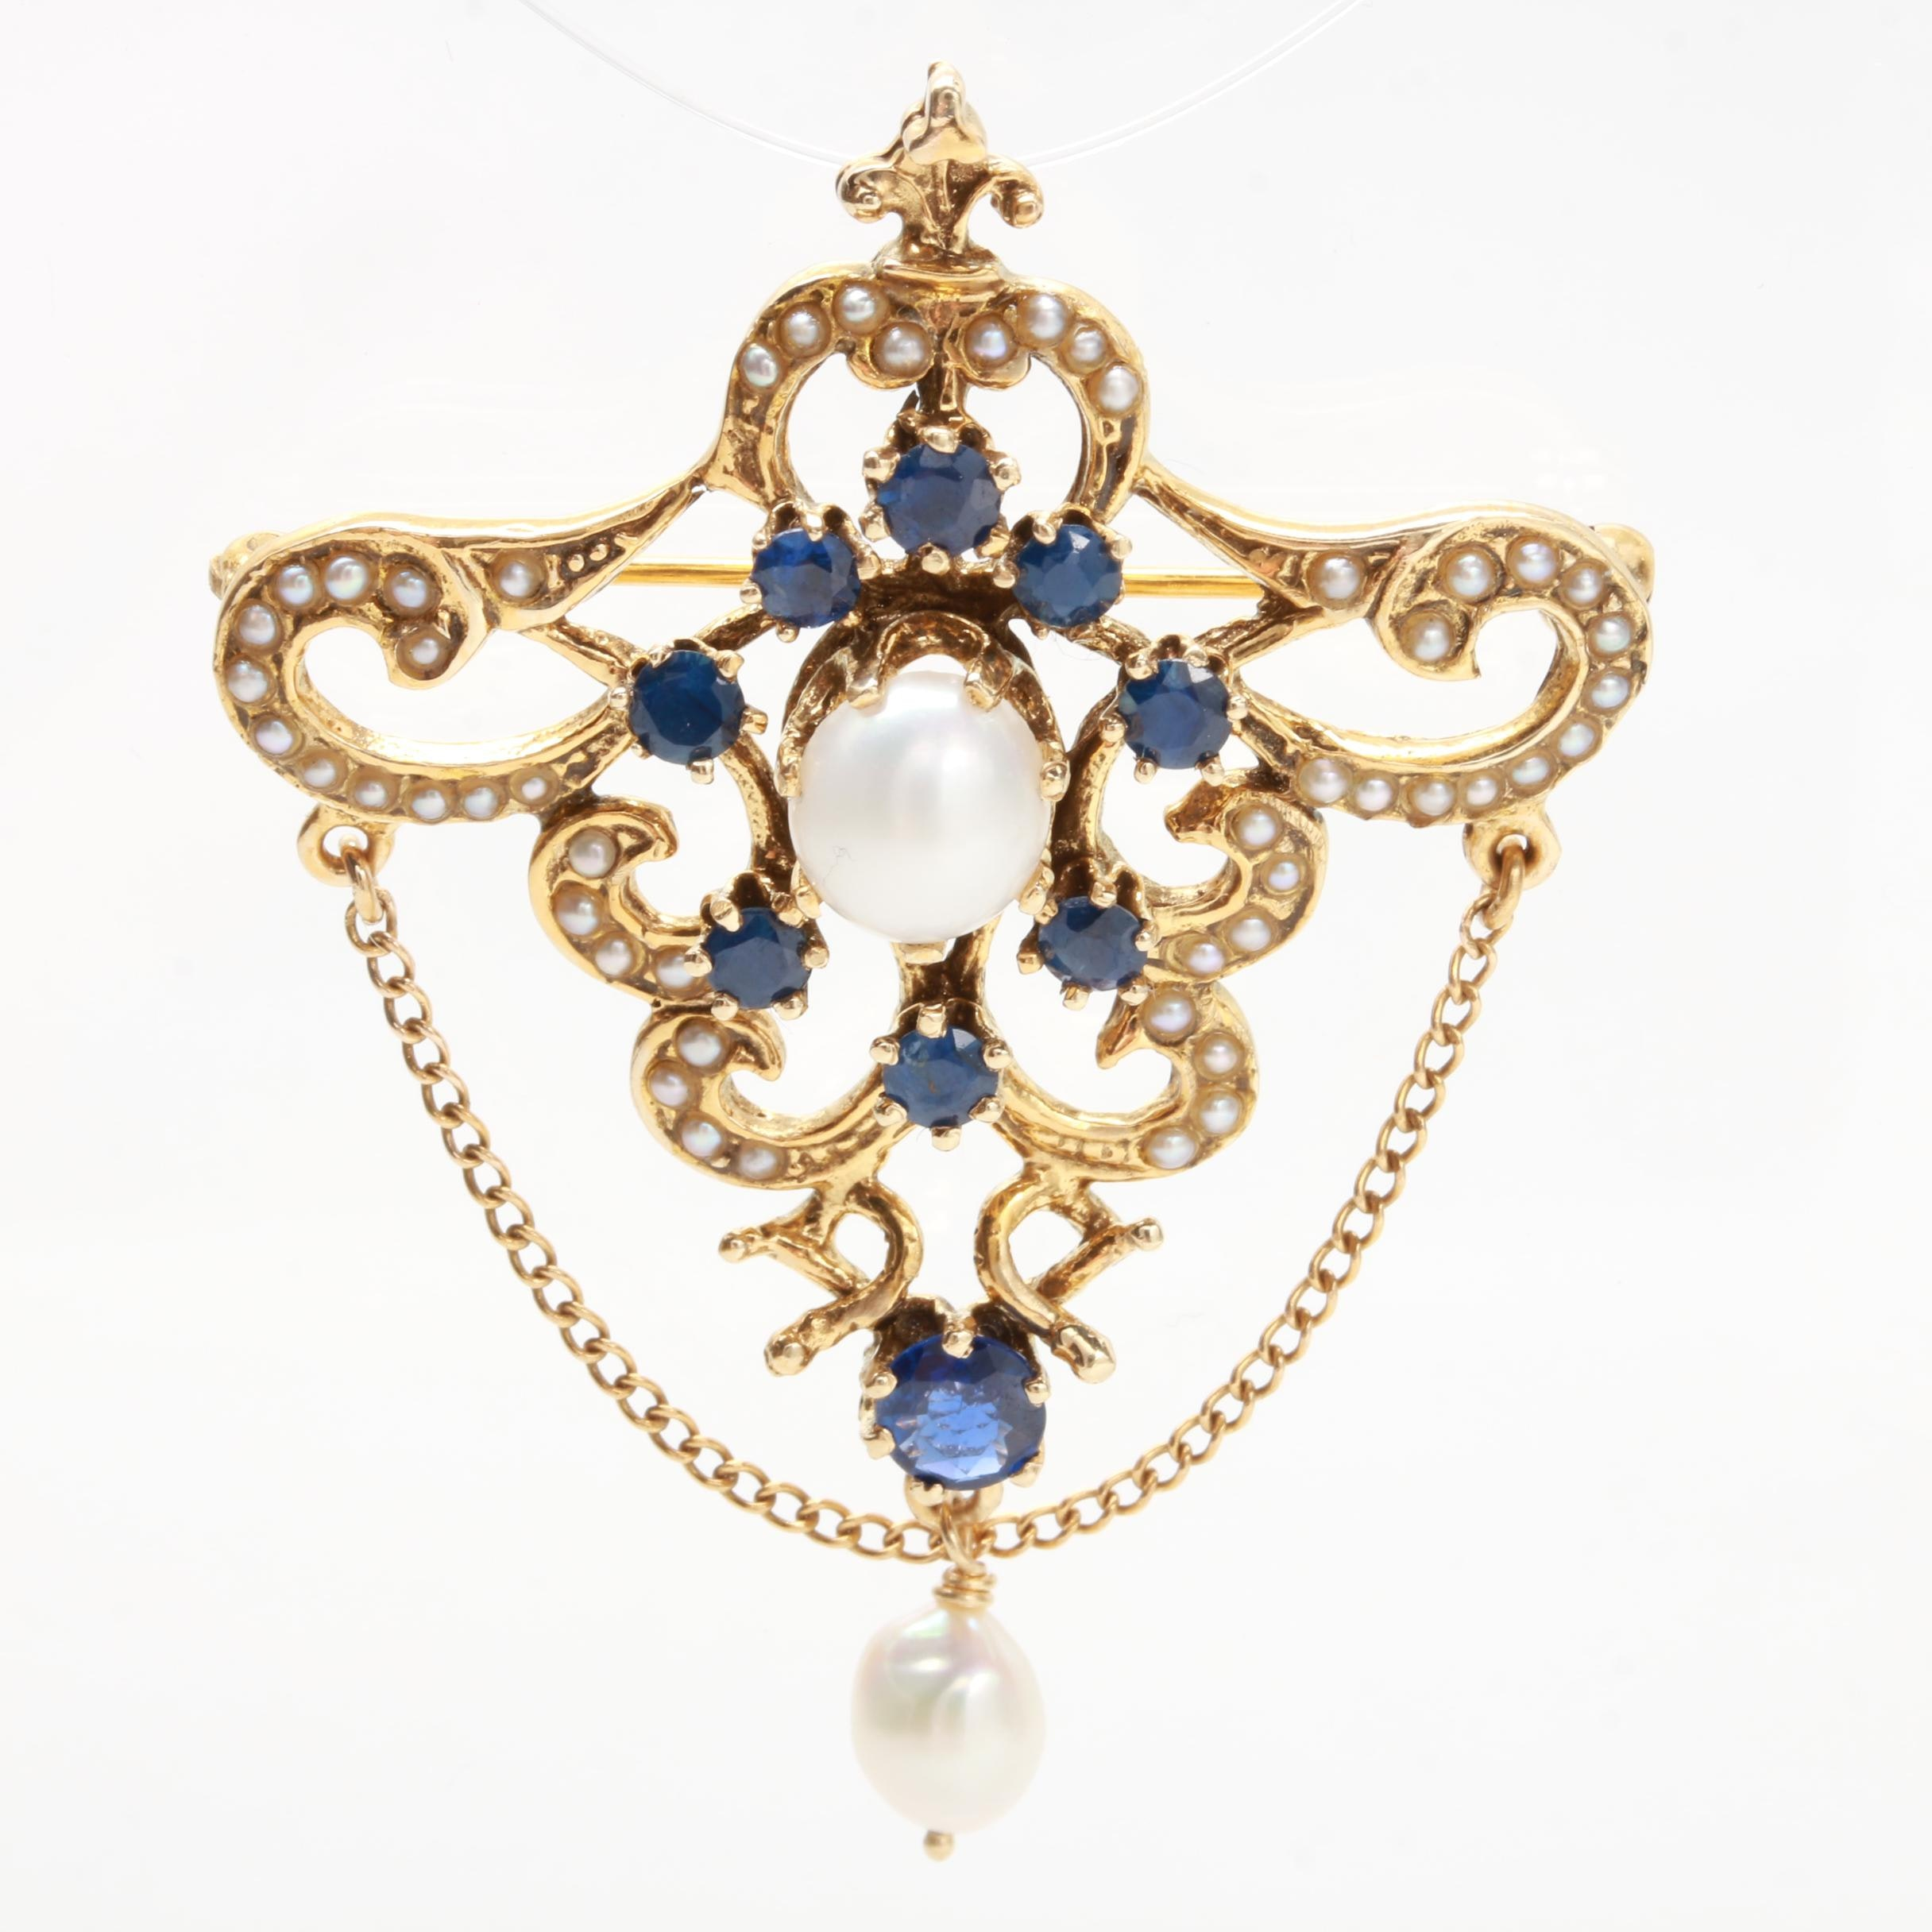 Victorian Revival Vintage 14K Gold Cultured Pearl Blue Sapphire Pendant Brooch